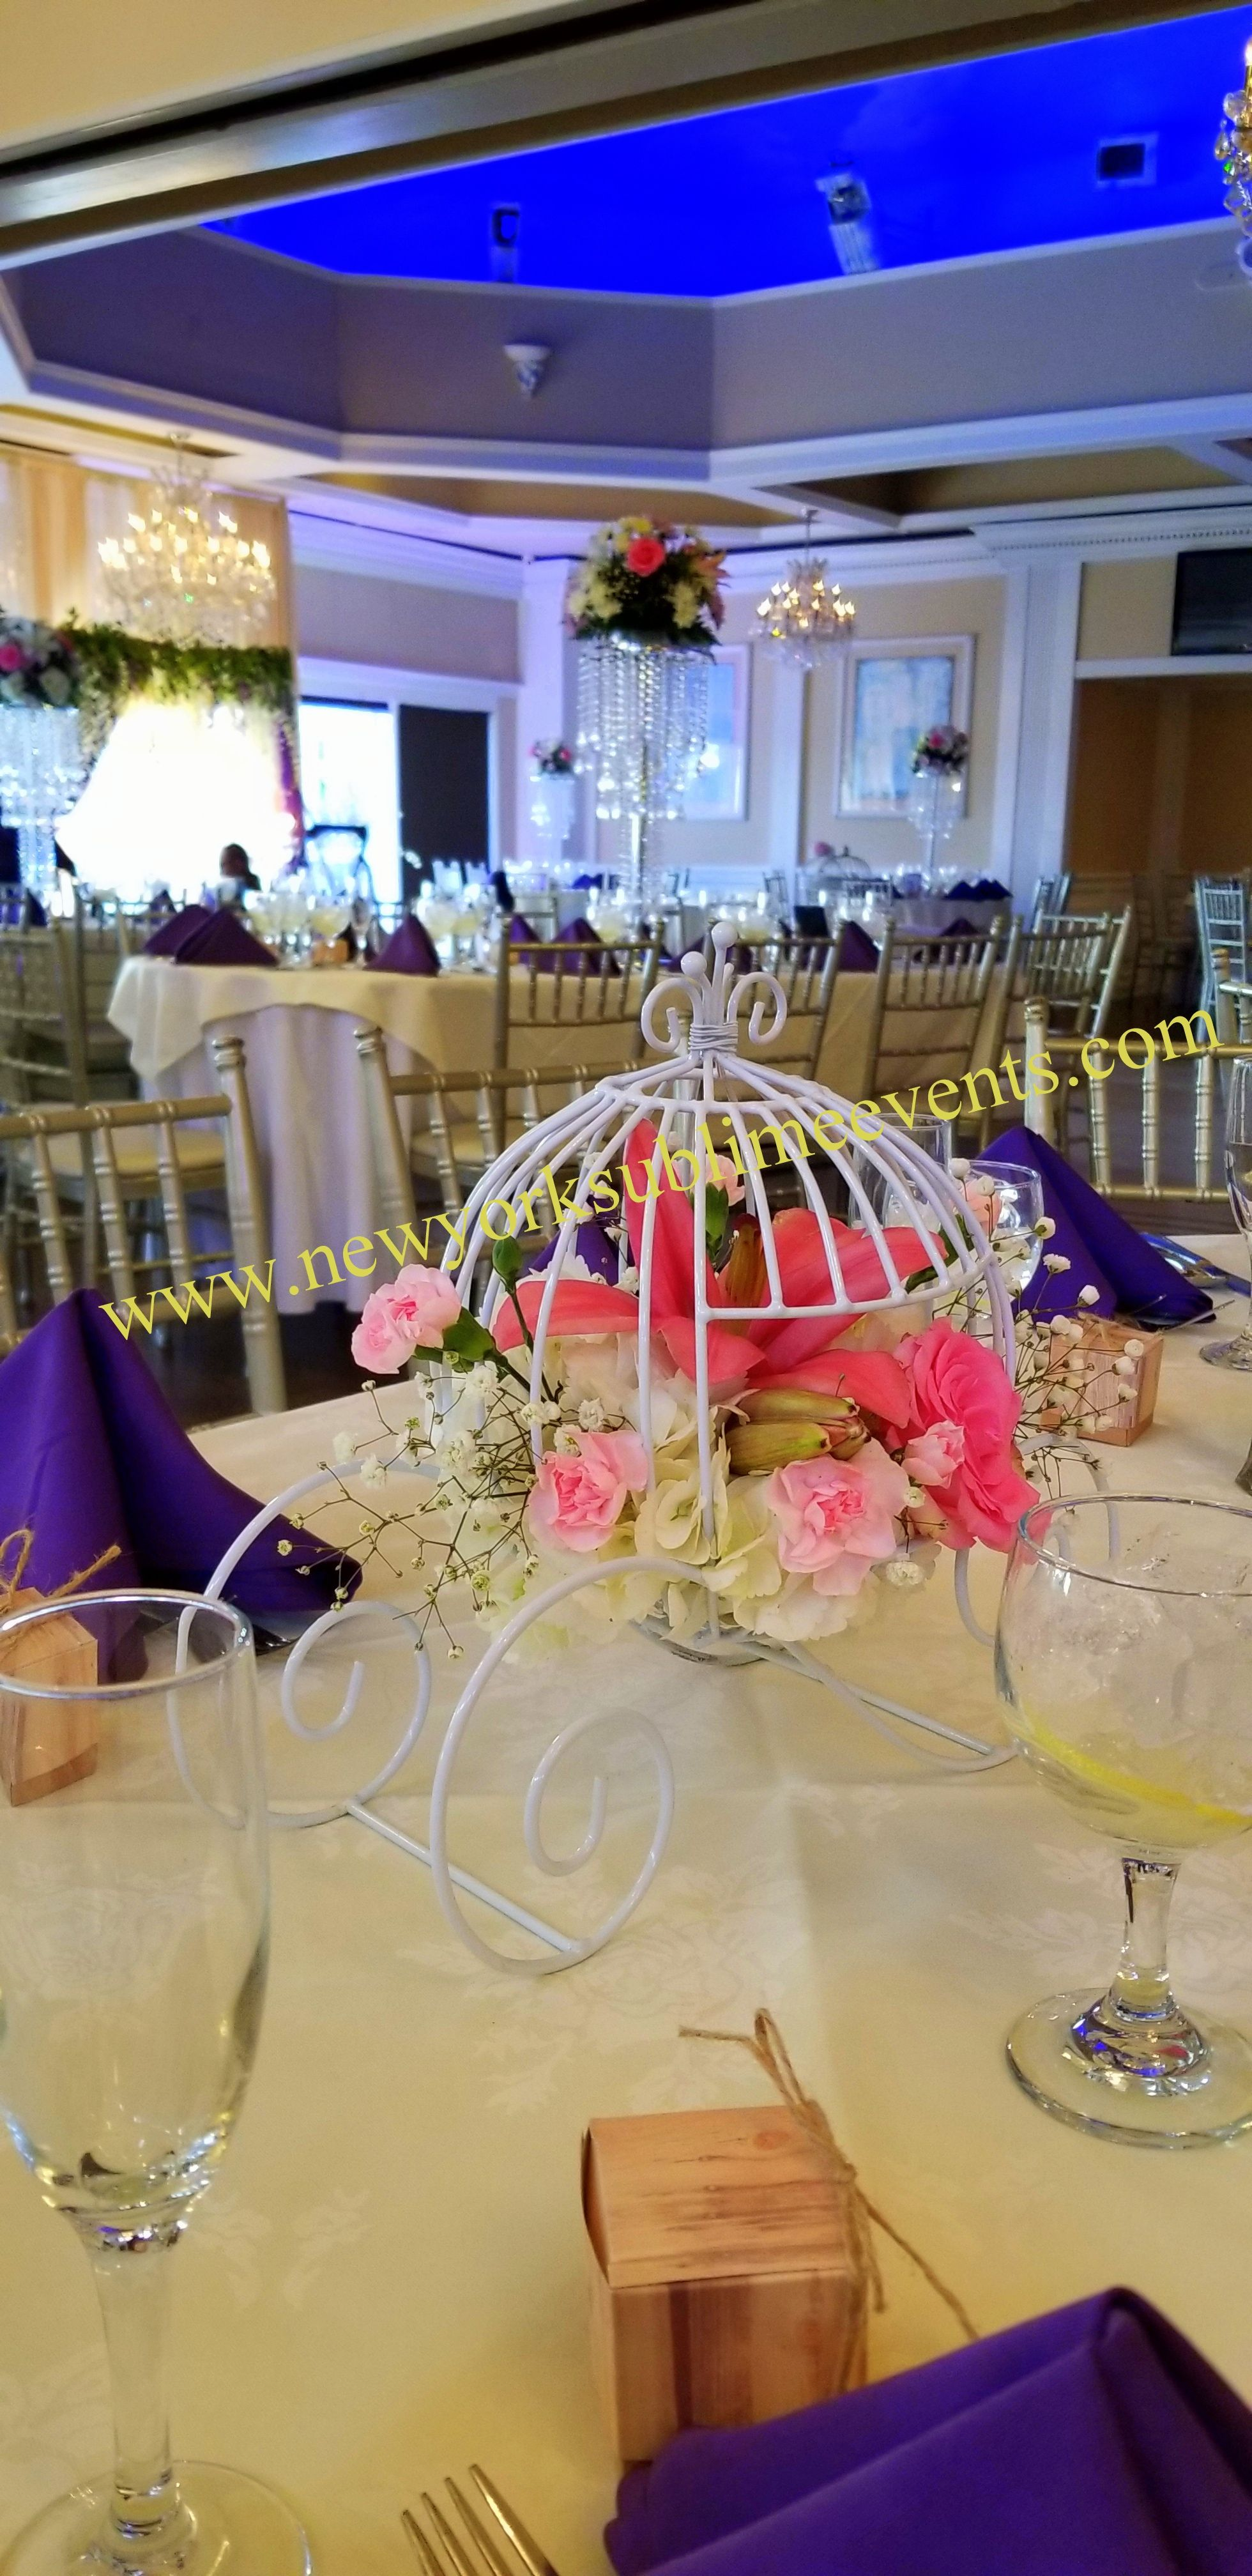 Cinderella Carriage Centerpieces Looking Adorable On This Wedding Table Setting